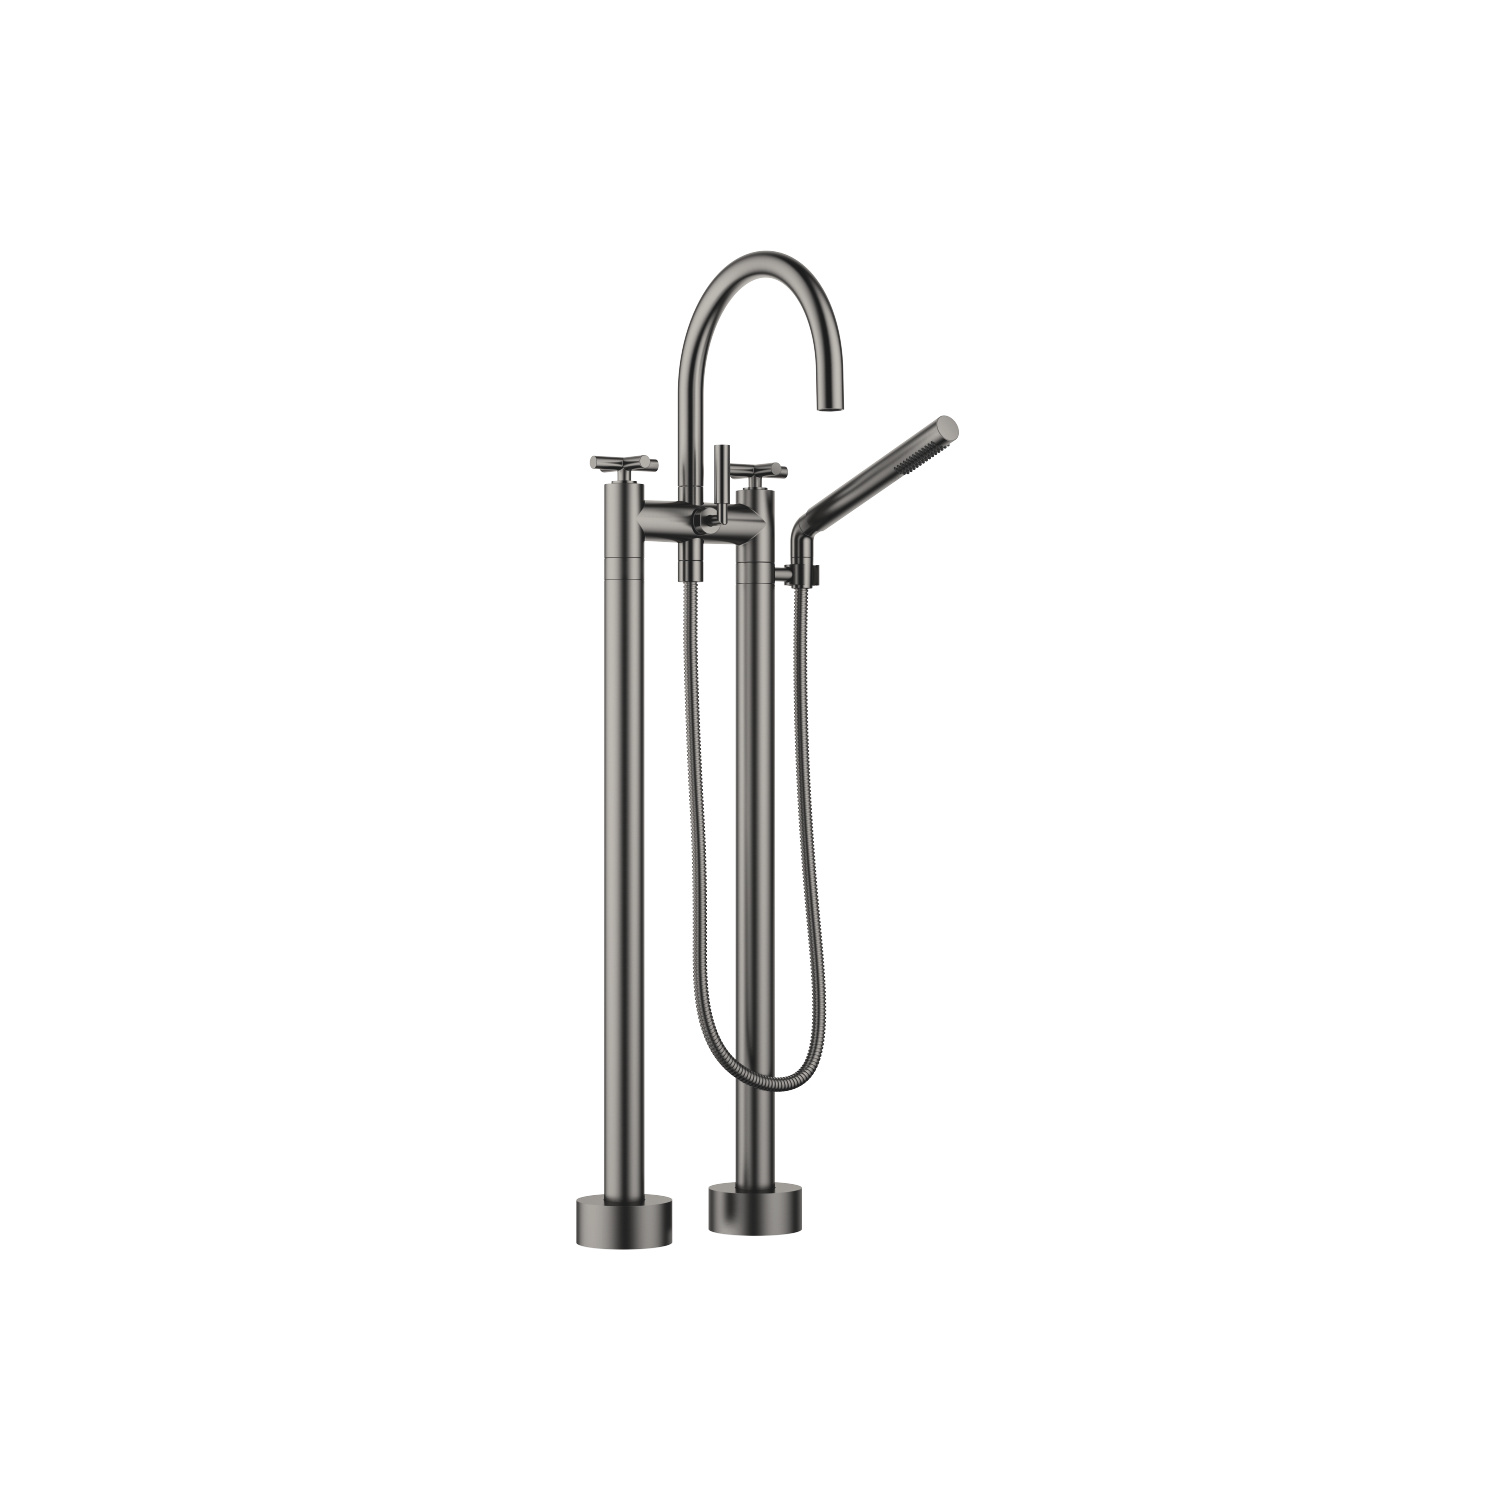 Two-hole bath mixer for free-standing assembly with hand shower set - Dark Platinum matt - 25 943 892-99